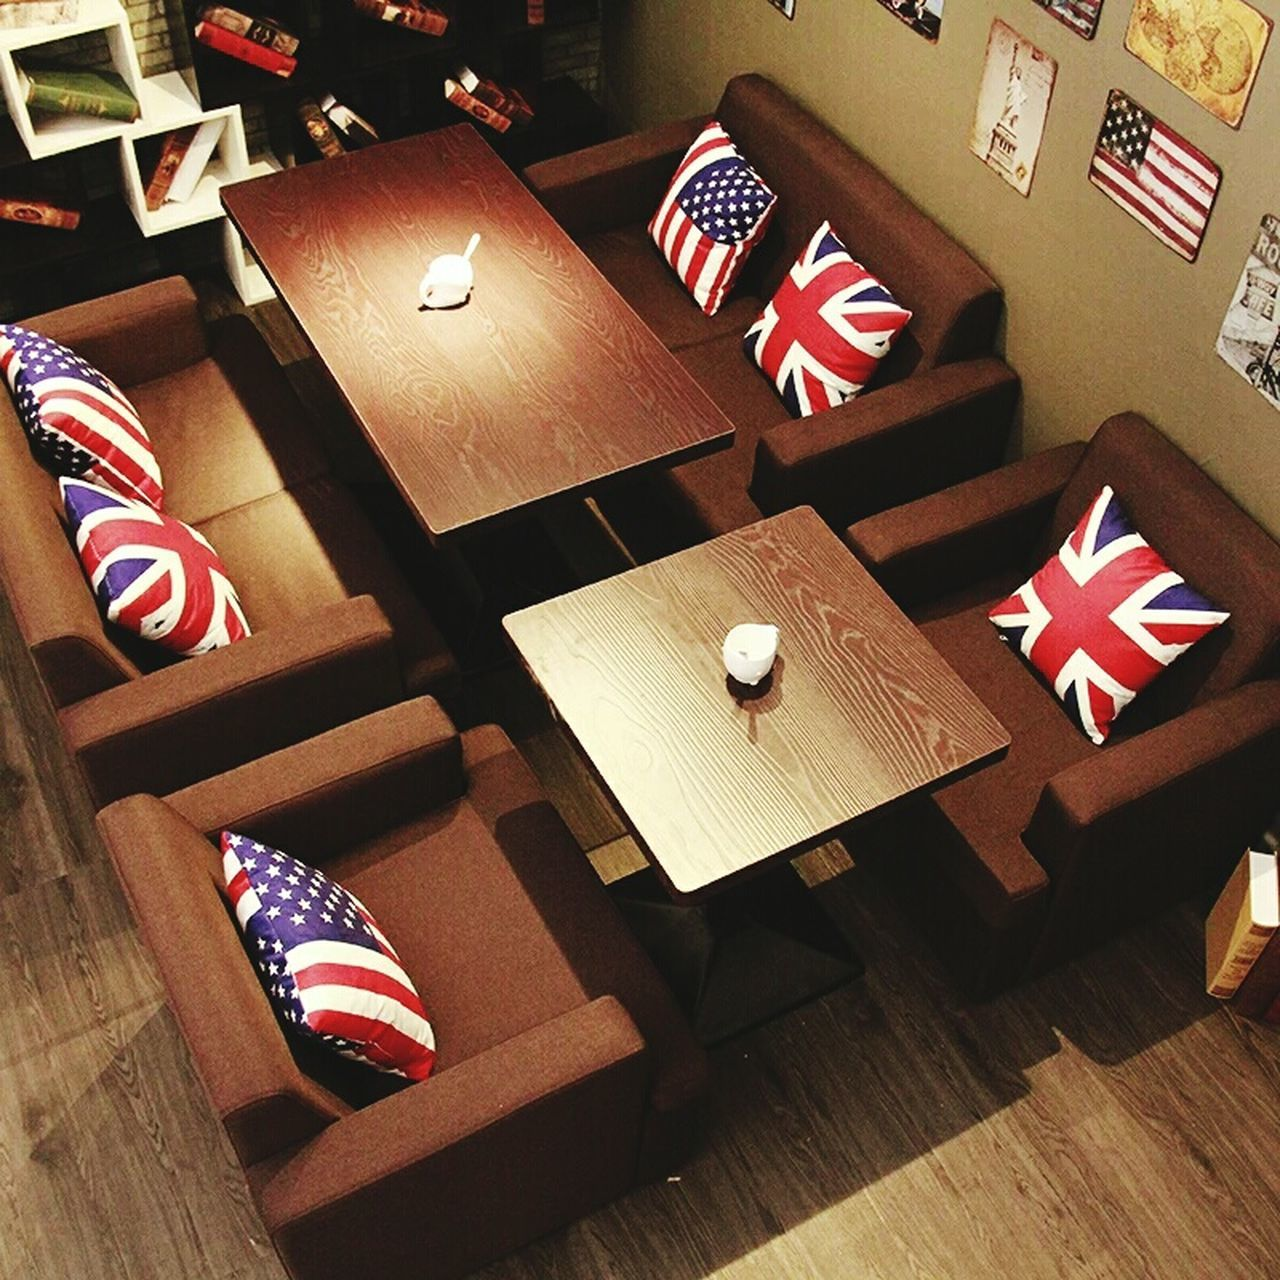 flag, patriotism, pride, striped, indoors, table, stars and stripes, democracy, wood - material, no people, citizenship, voting, day